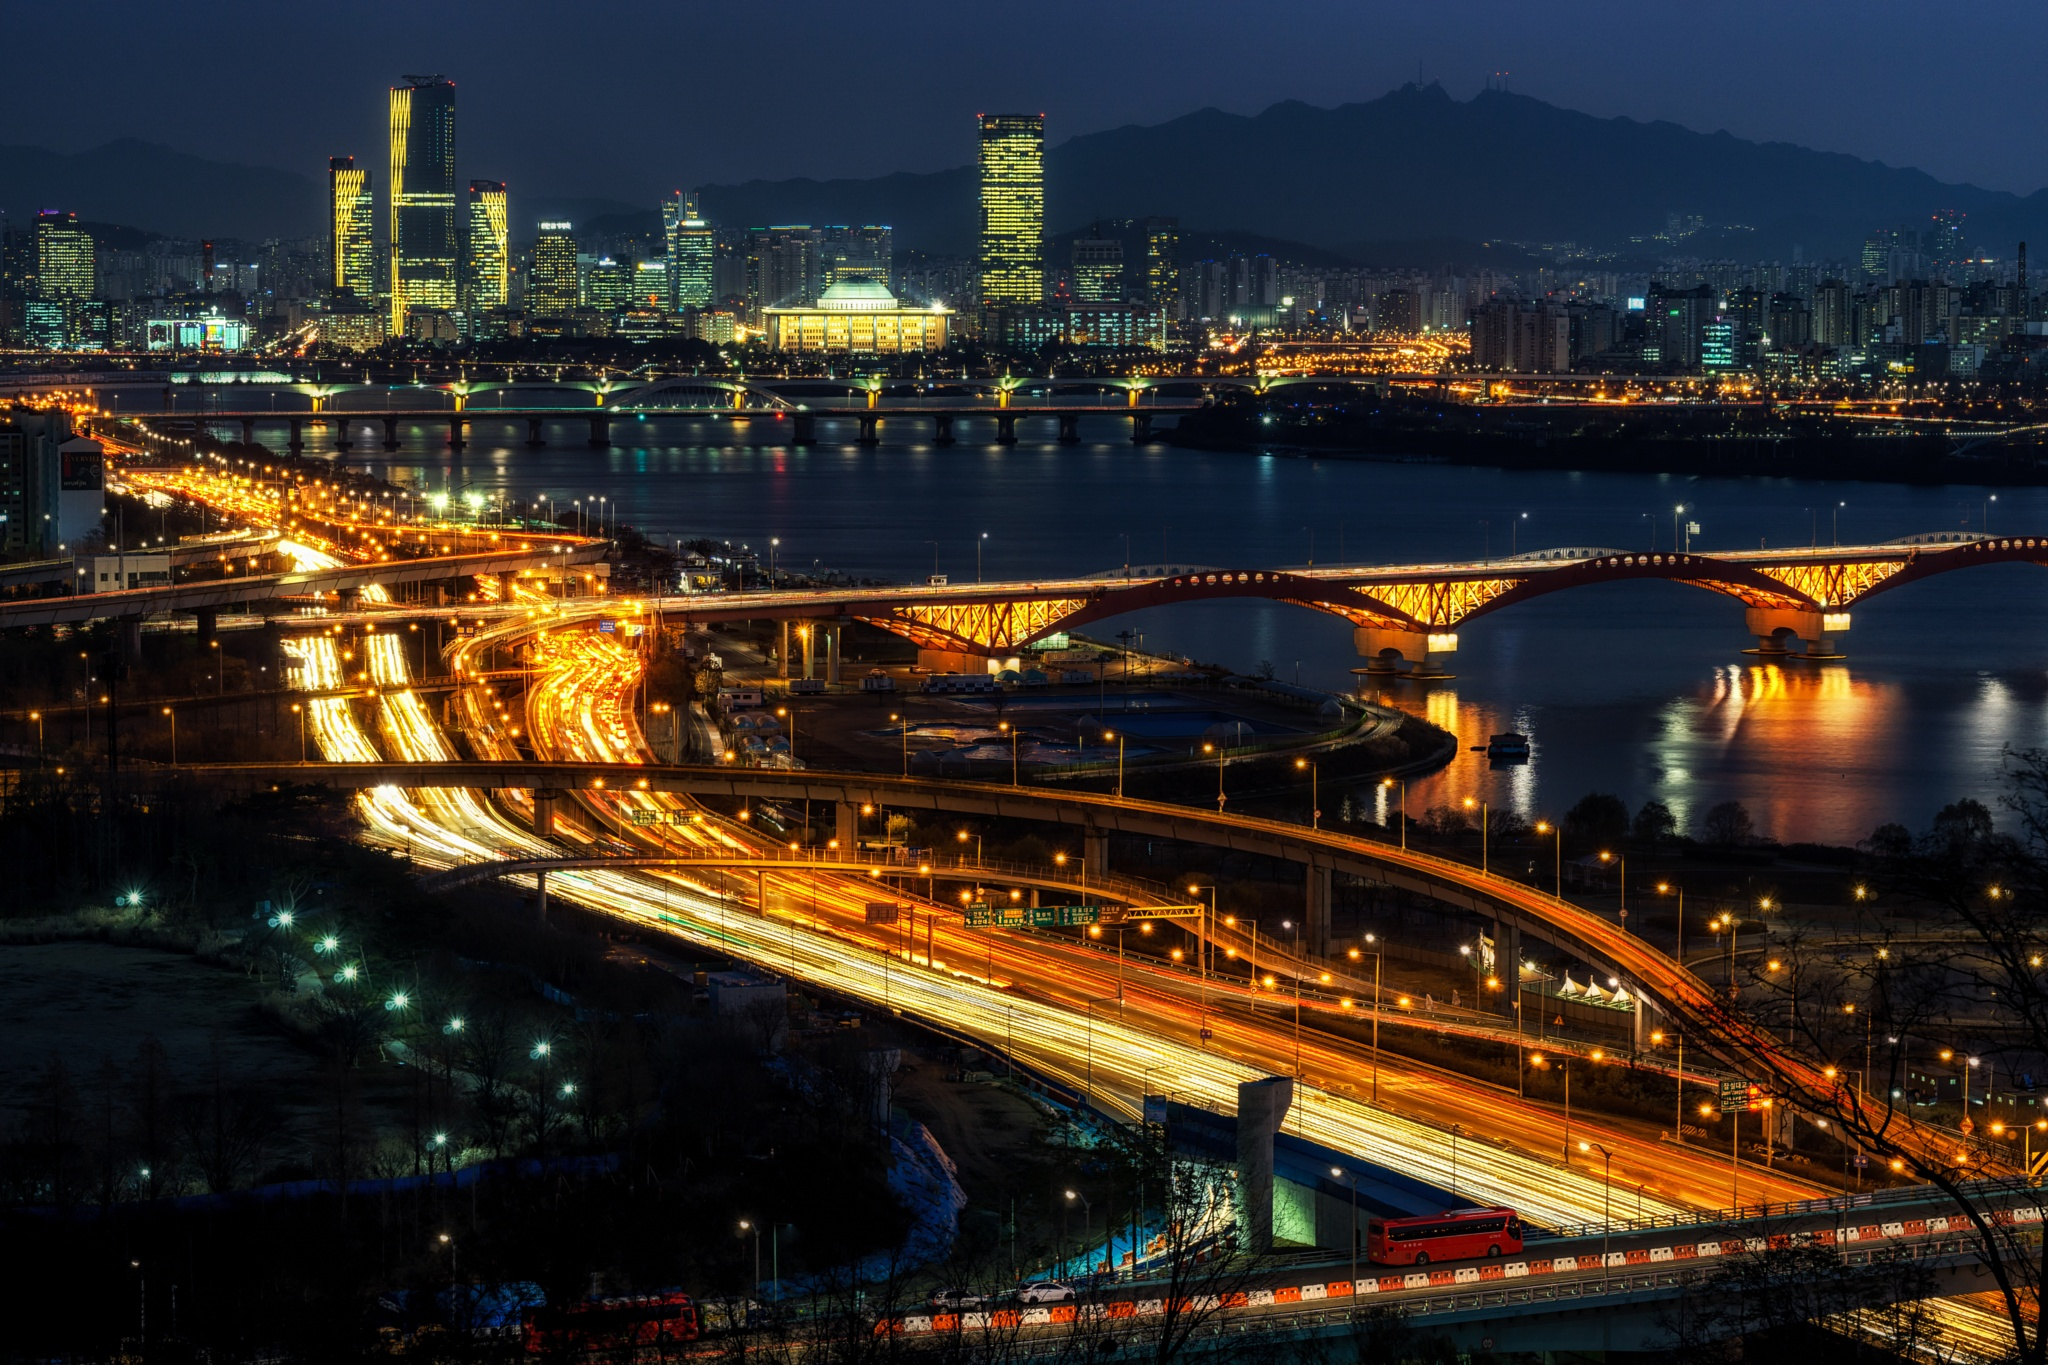 Rush hour traffic over Seoul by Aaron Choi